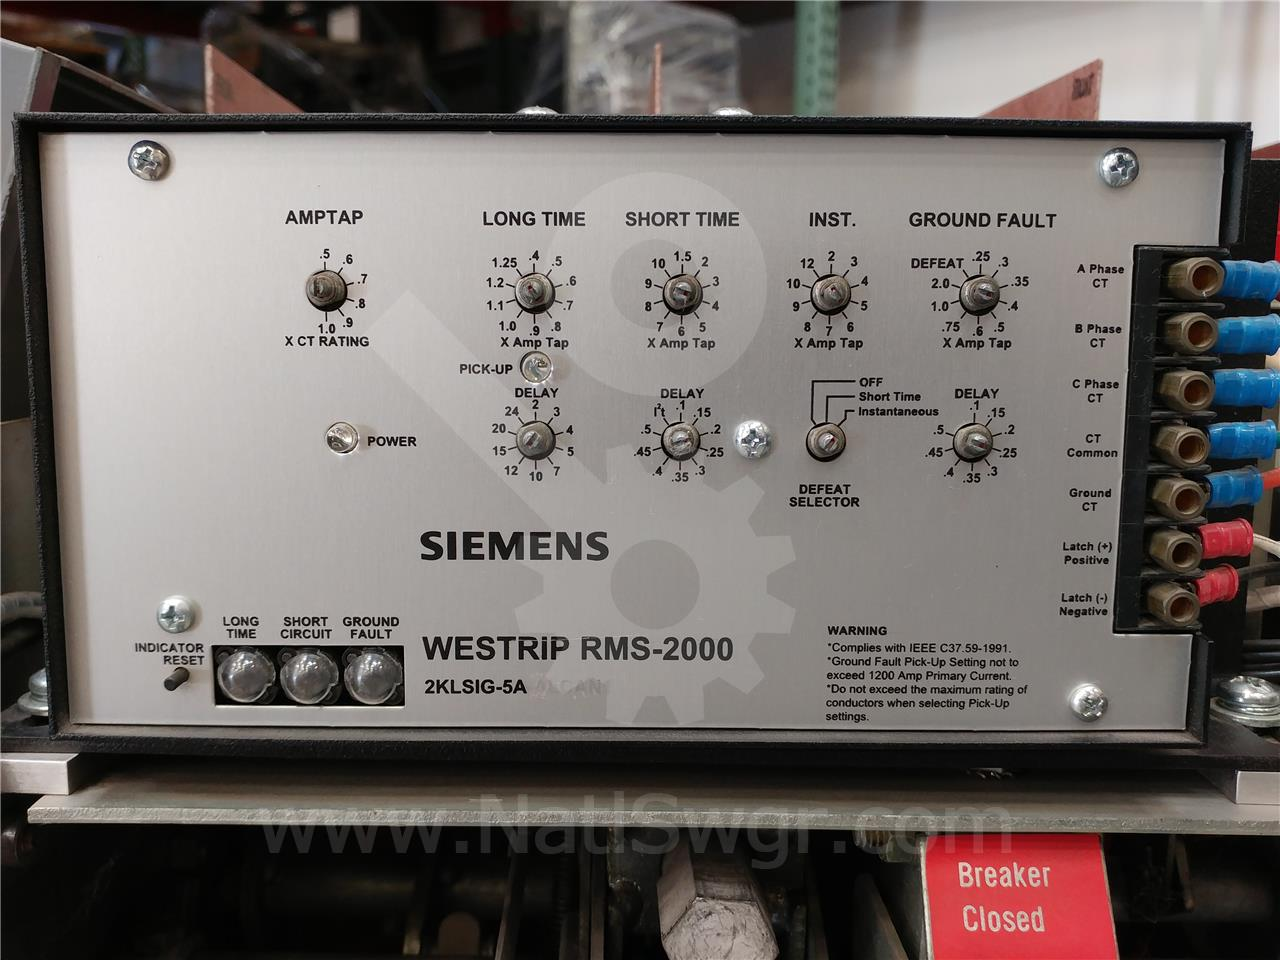 SA WESTRIP RMS-2000 SOLID STATE RETROFIT PROGRAMMER LSIG